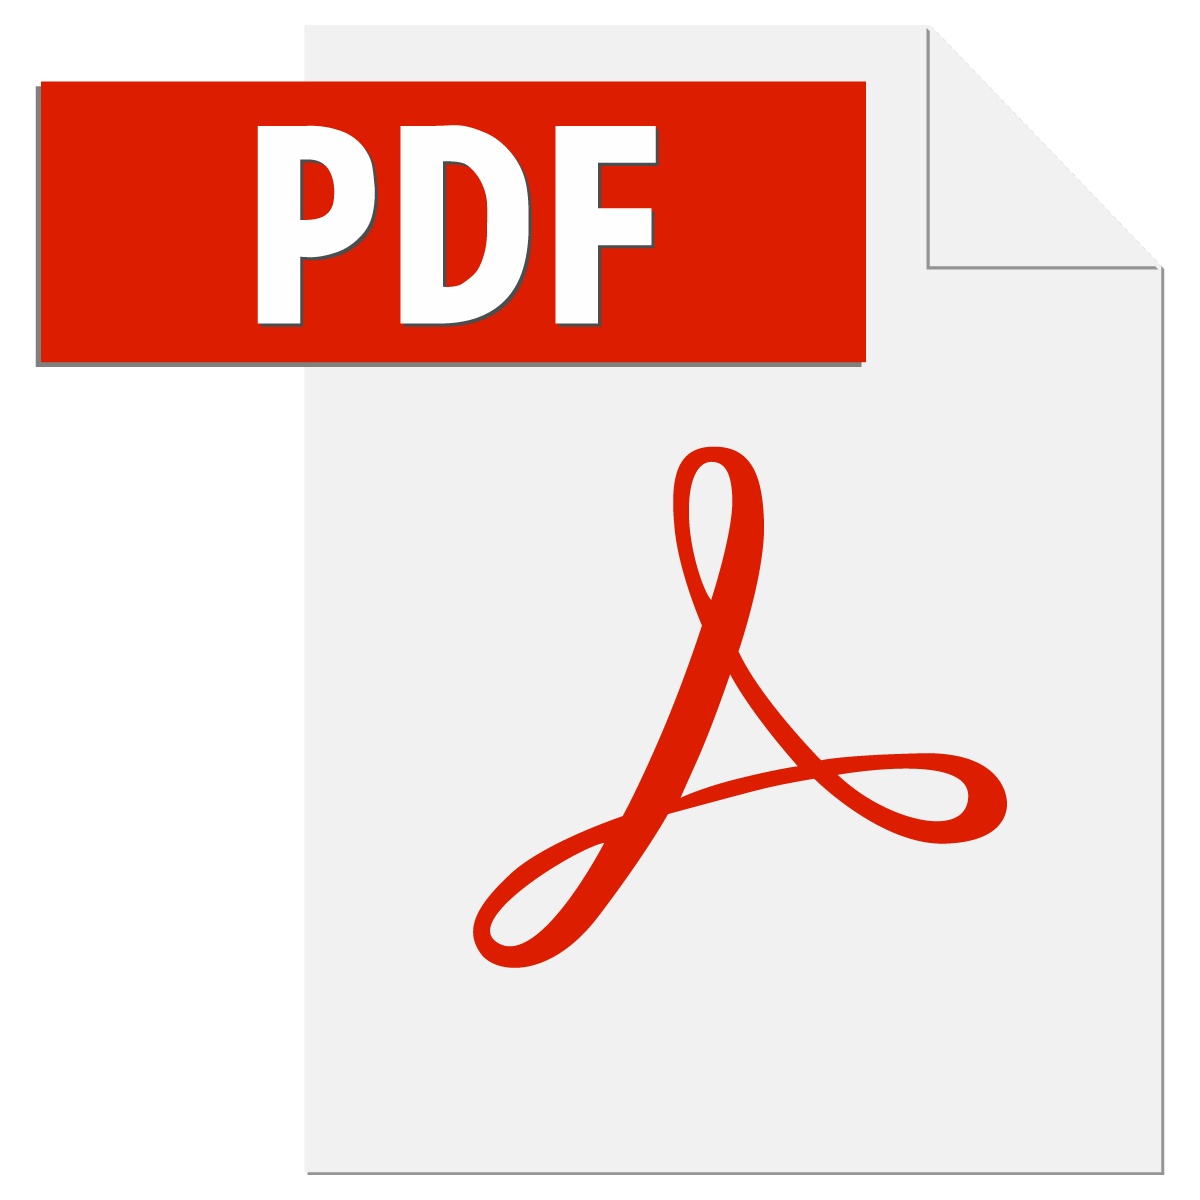 adobe pdf file icon logo vector